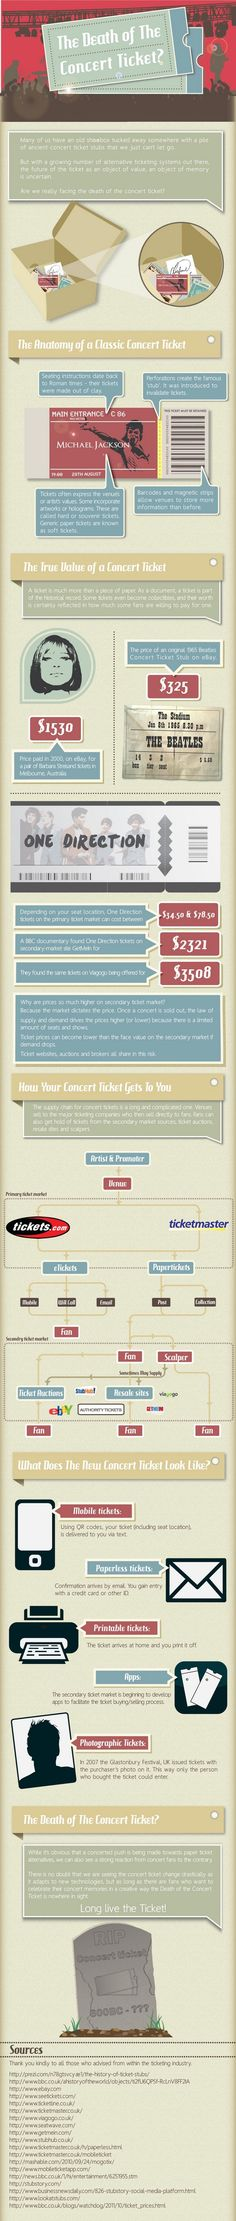 Death of concert tickets #infographic